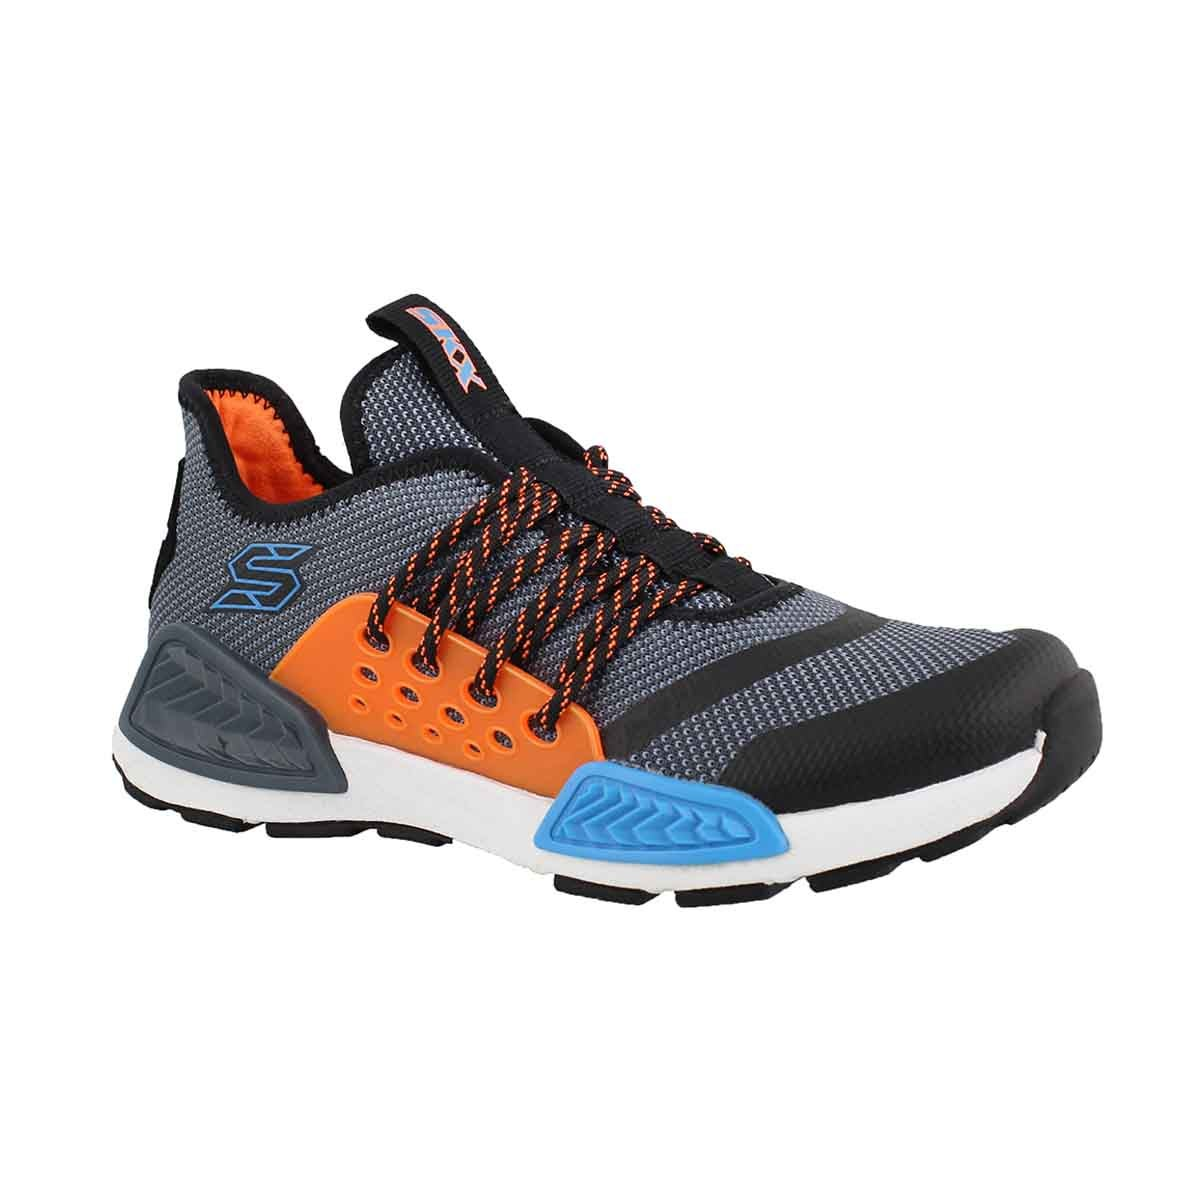 Boys' KINECTORS blue/mlti lace up sneakers